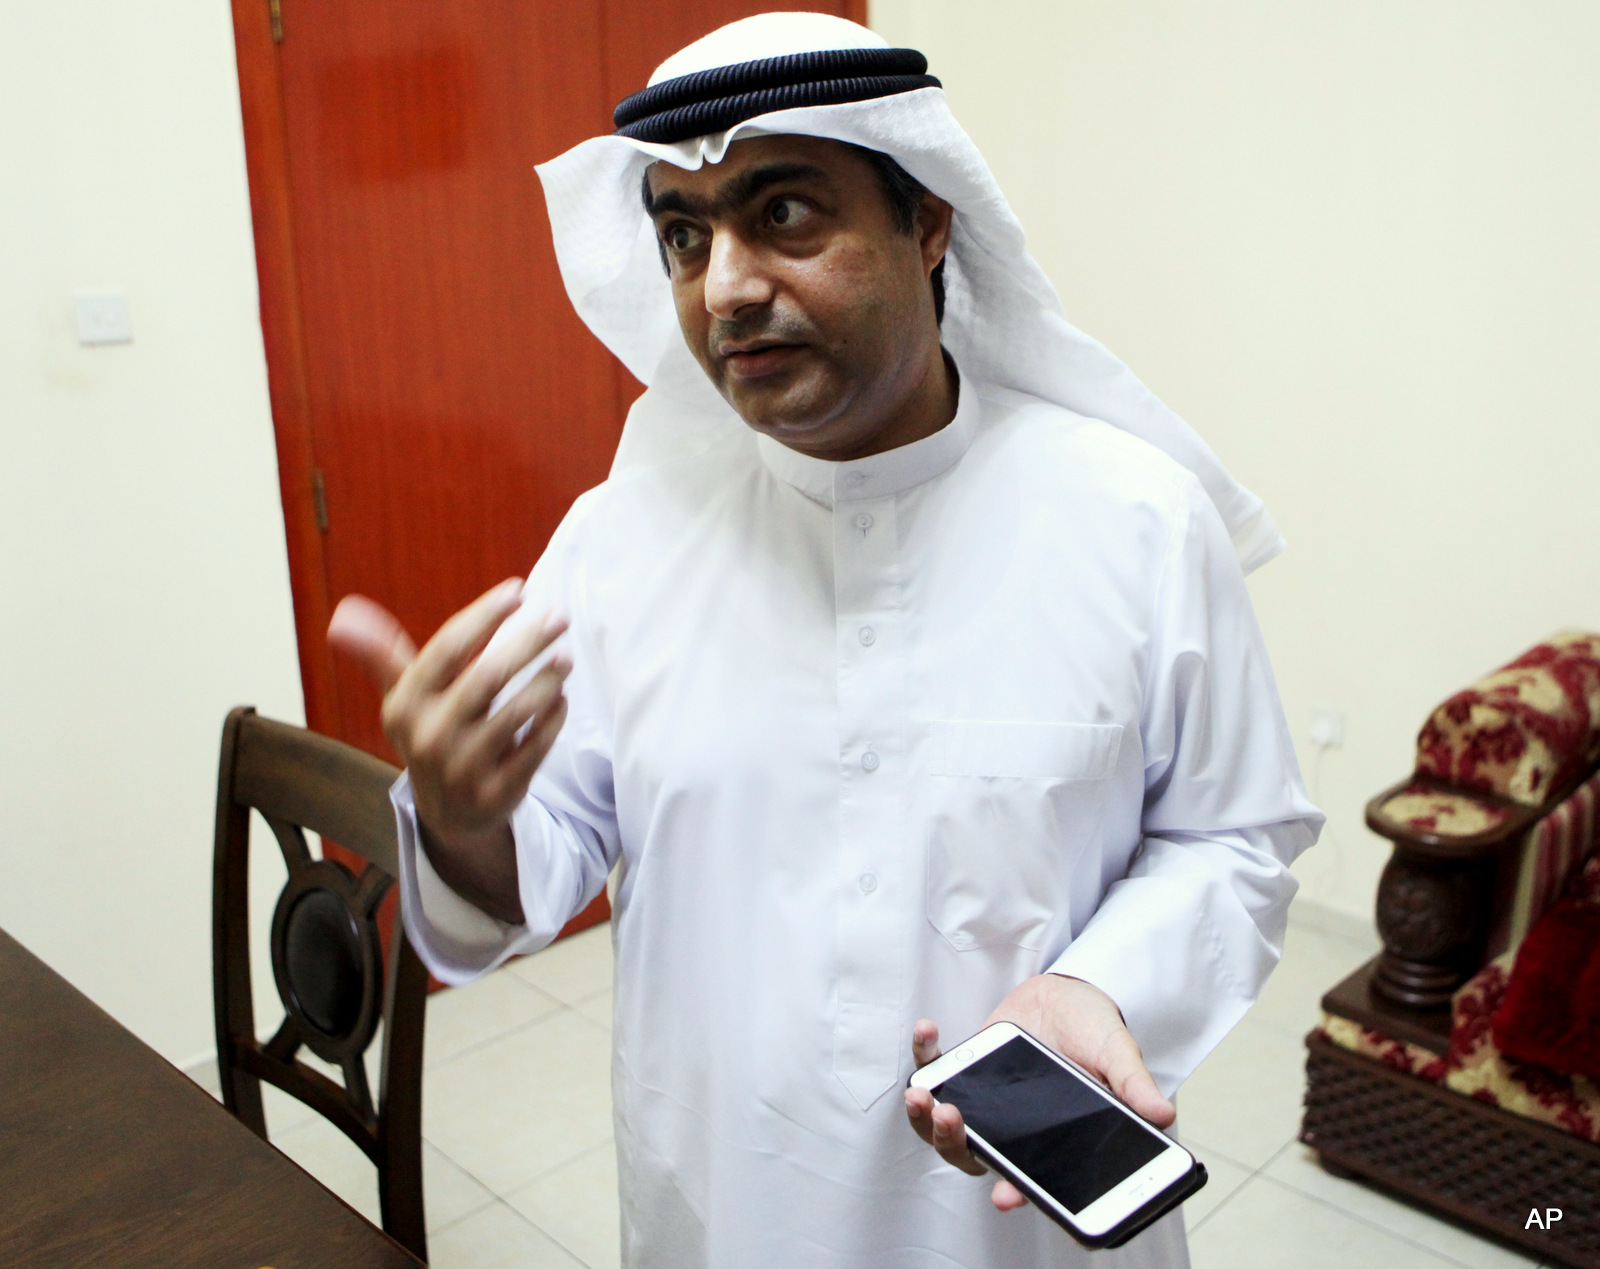 Human rights activist Ahmed Mansoor speaks to journalists in Ajman, United Arab Emirates, on Thursday, Aug. 25, 2016. Mansoor was recently targeted by NSO spyware that can hack into Apple's iPhone handset.